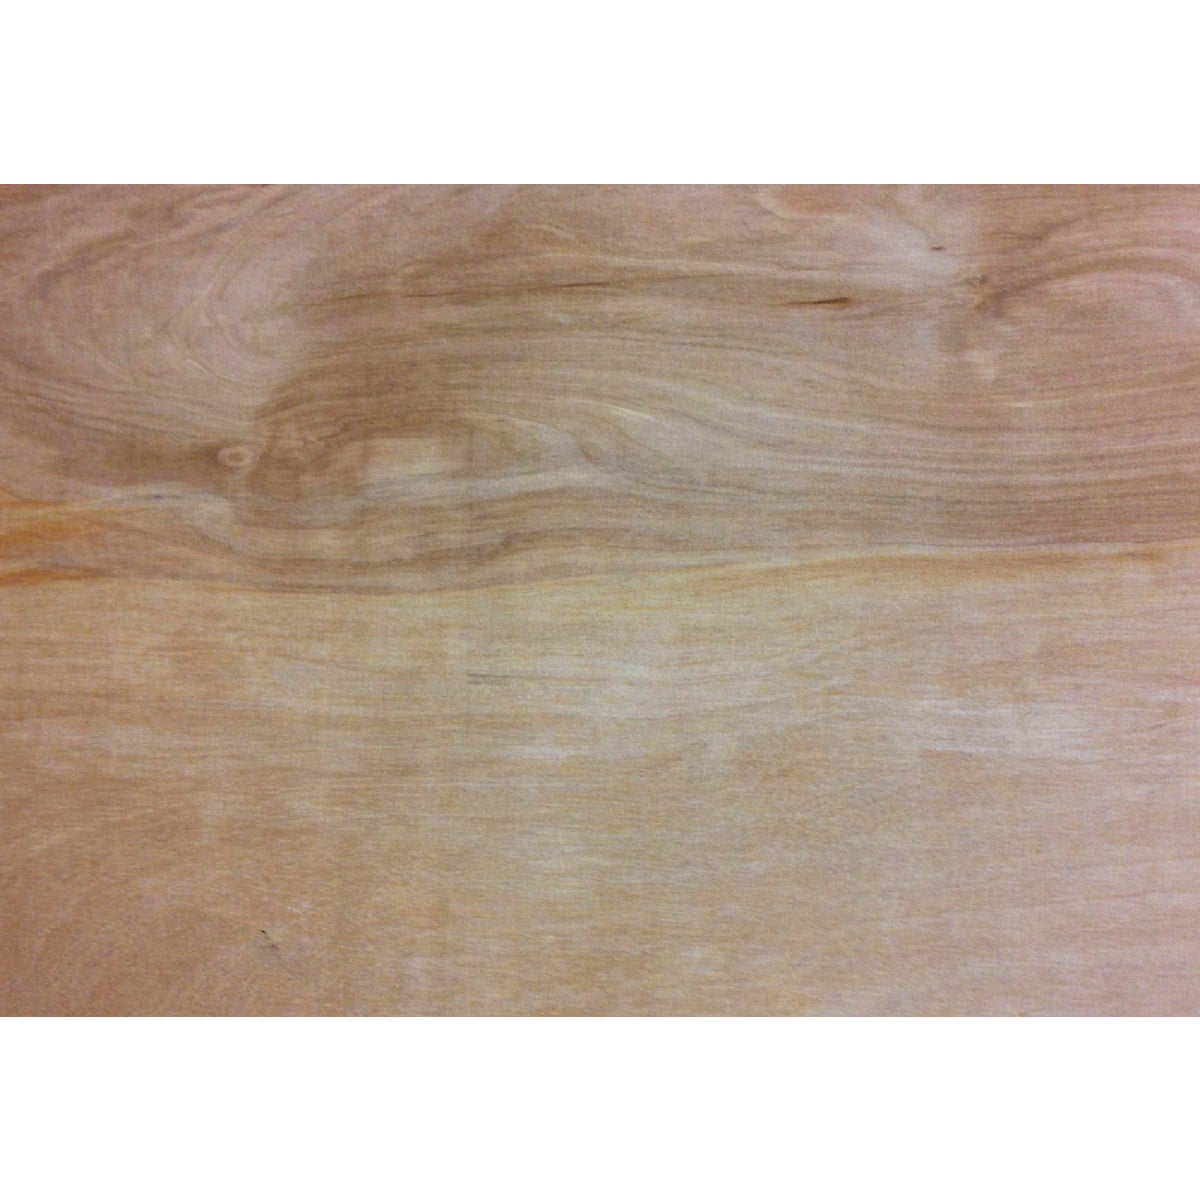 "1/2"" 24X48 BIRCH PLYWOOD - 109068 by Ufpi Lbr & Treated"